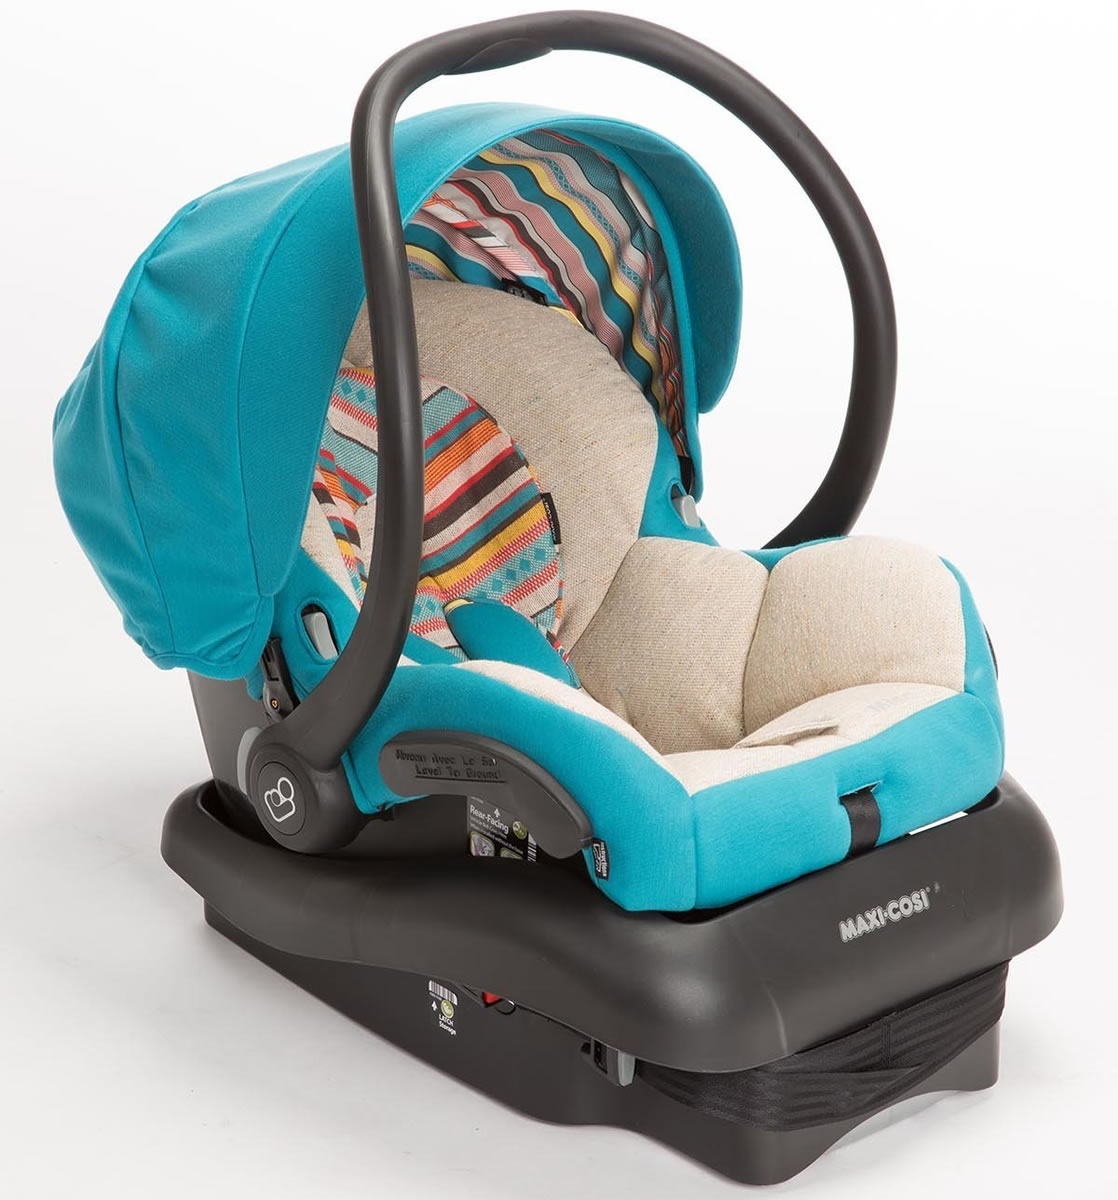 Maxi Cosi Mico Ap Infant Car Seat Installation Video